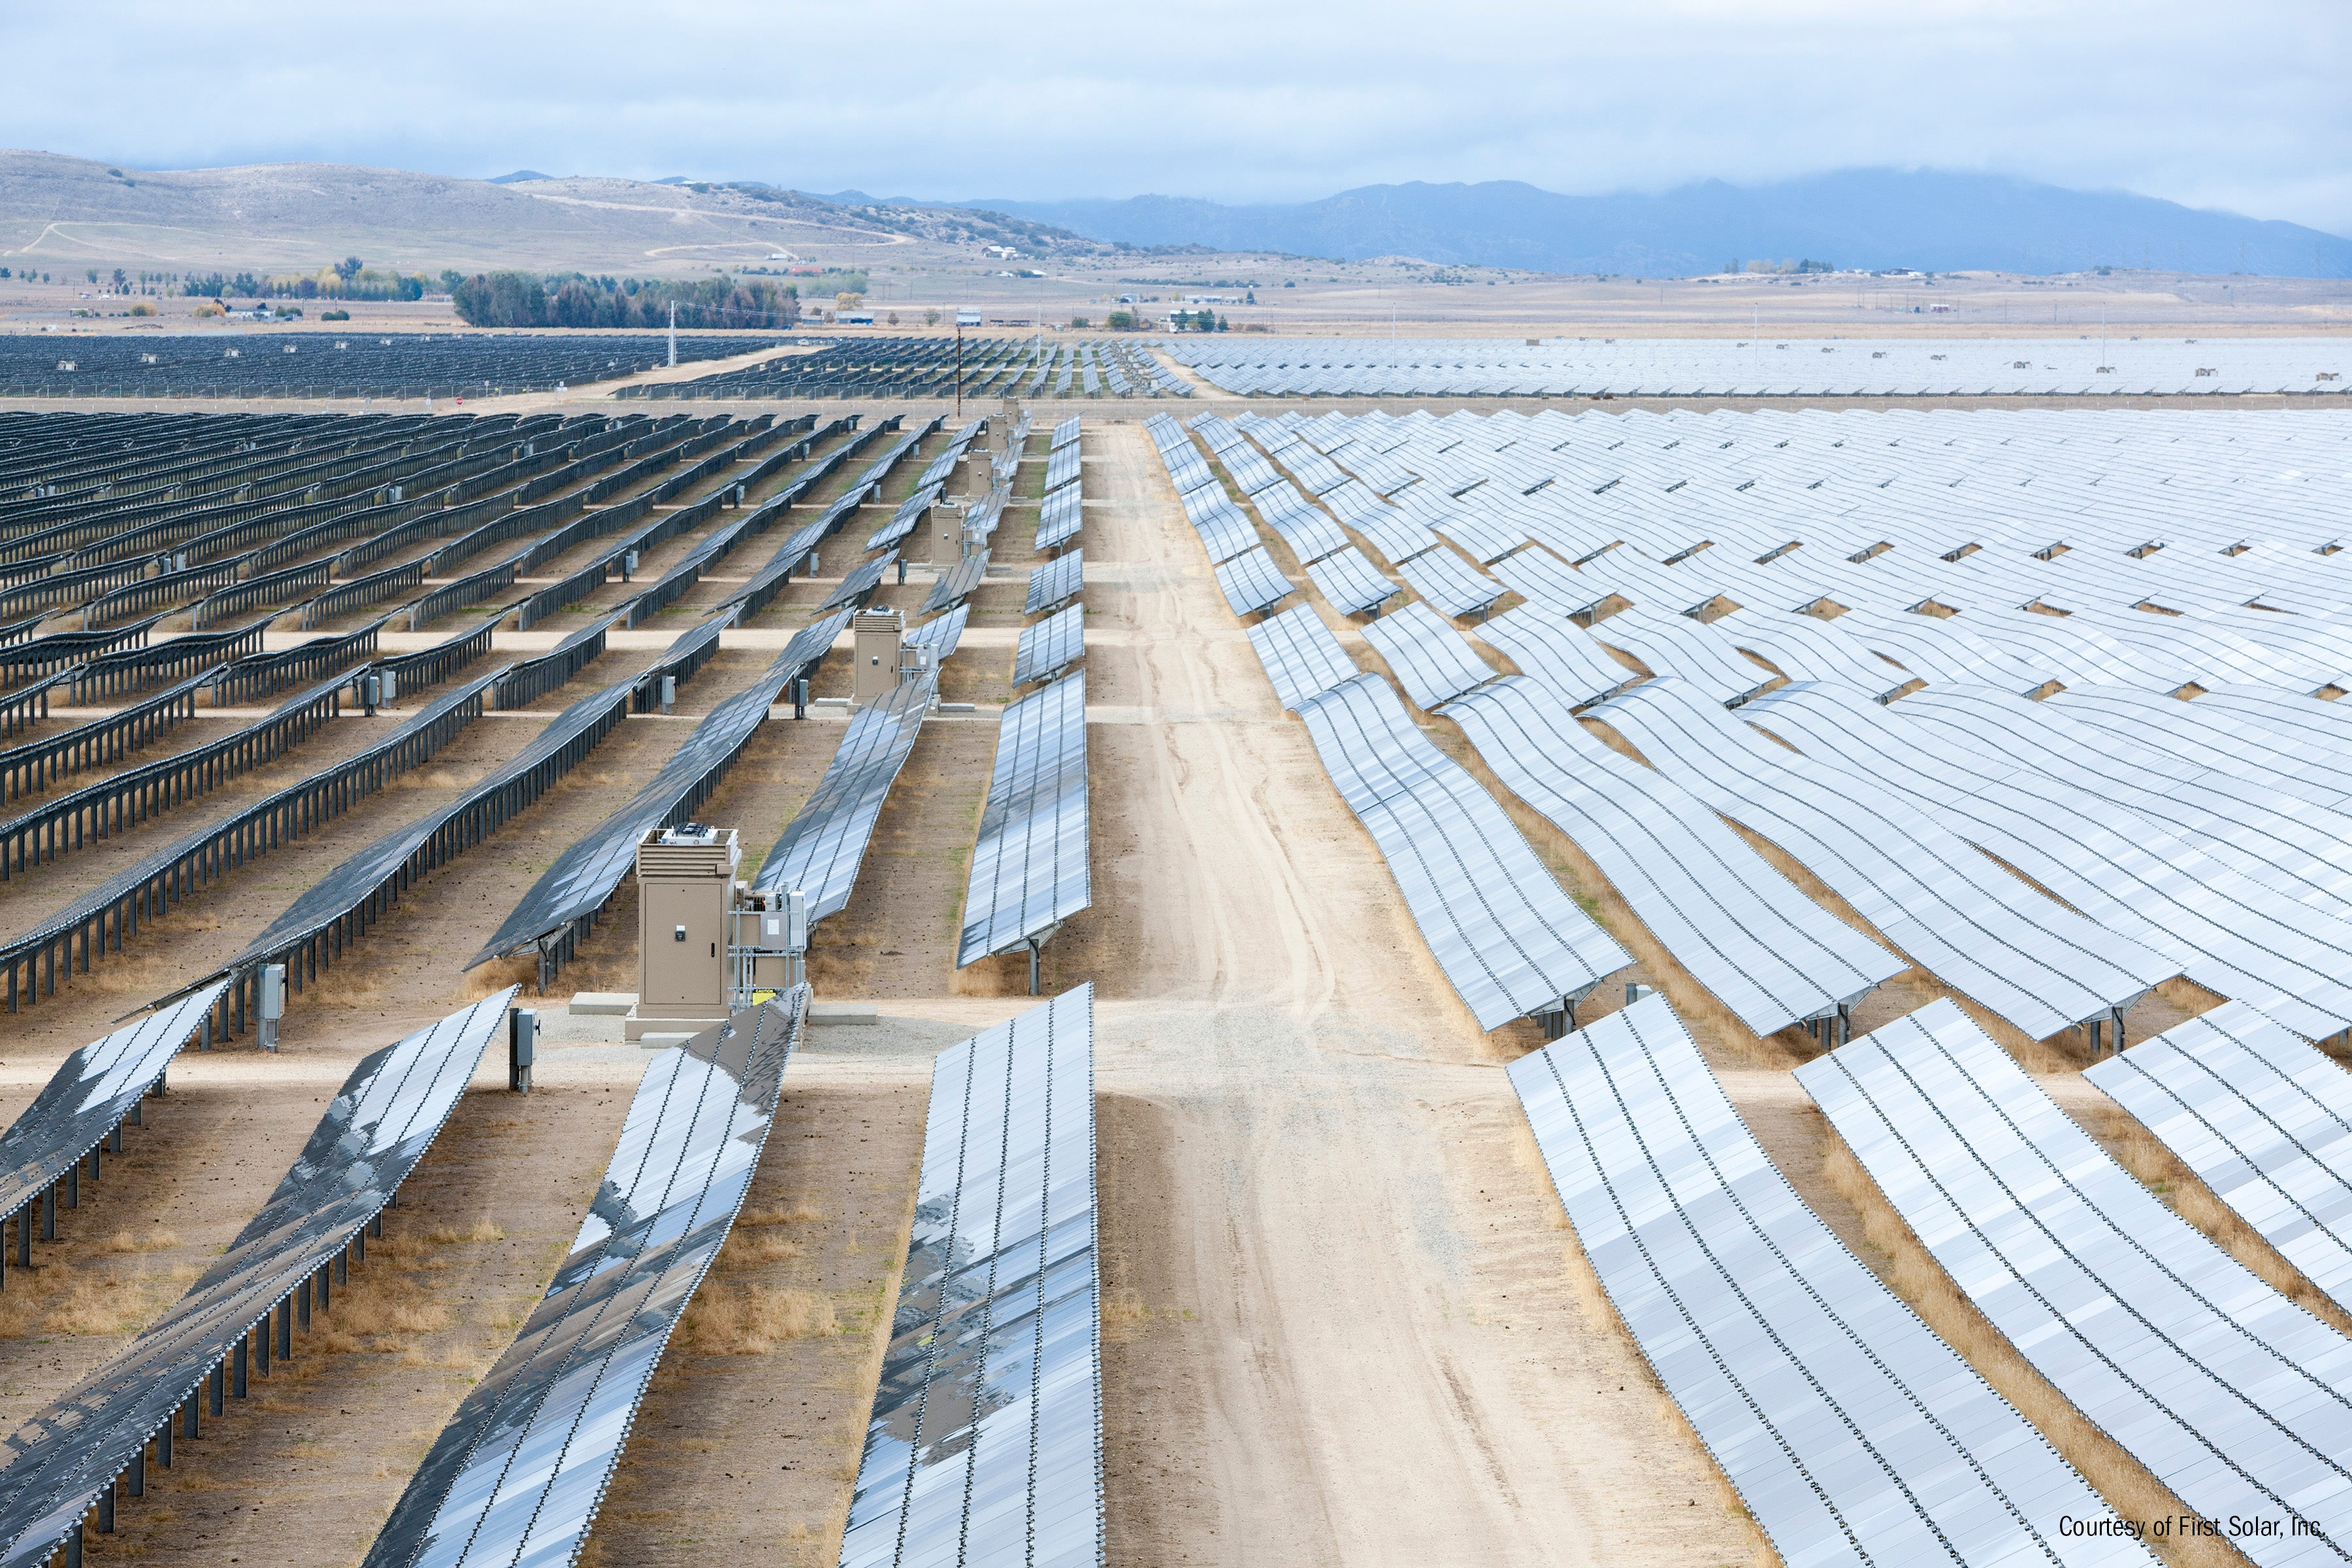 Why First Solar's Shares Plunged 14.9% Today | The Motley Fool